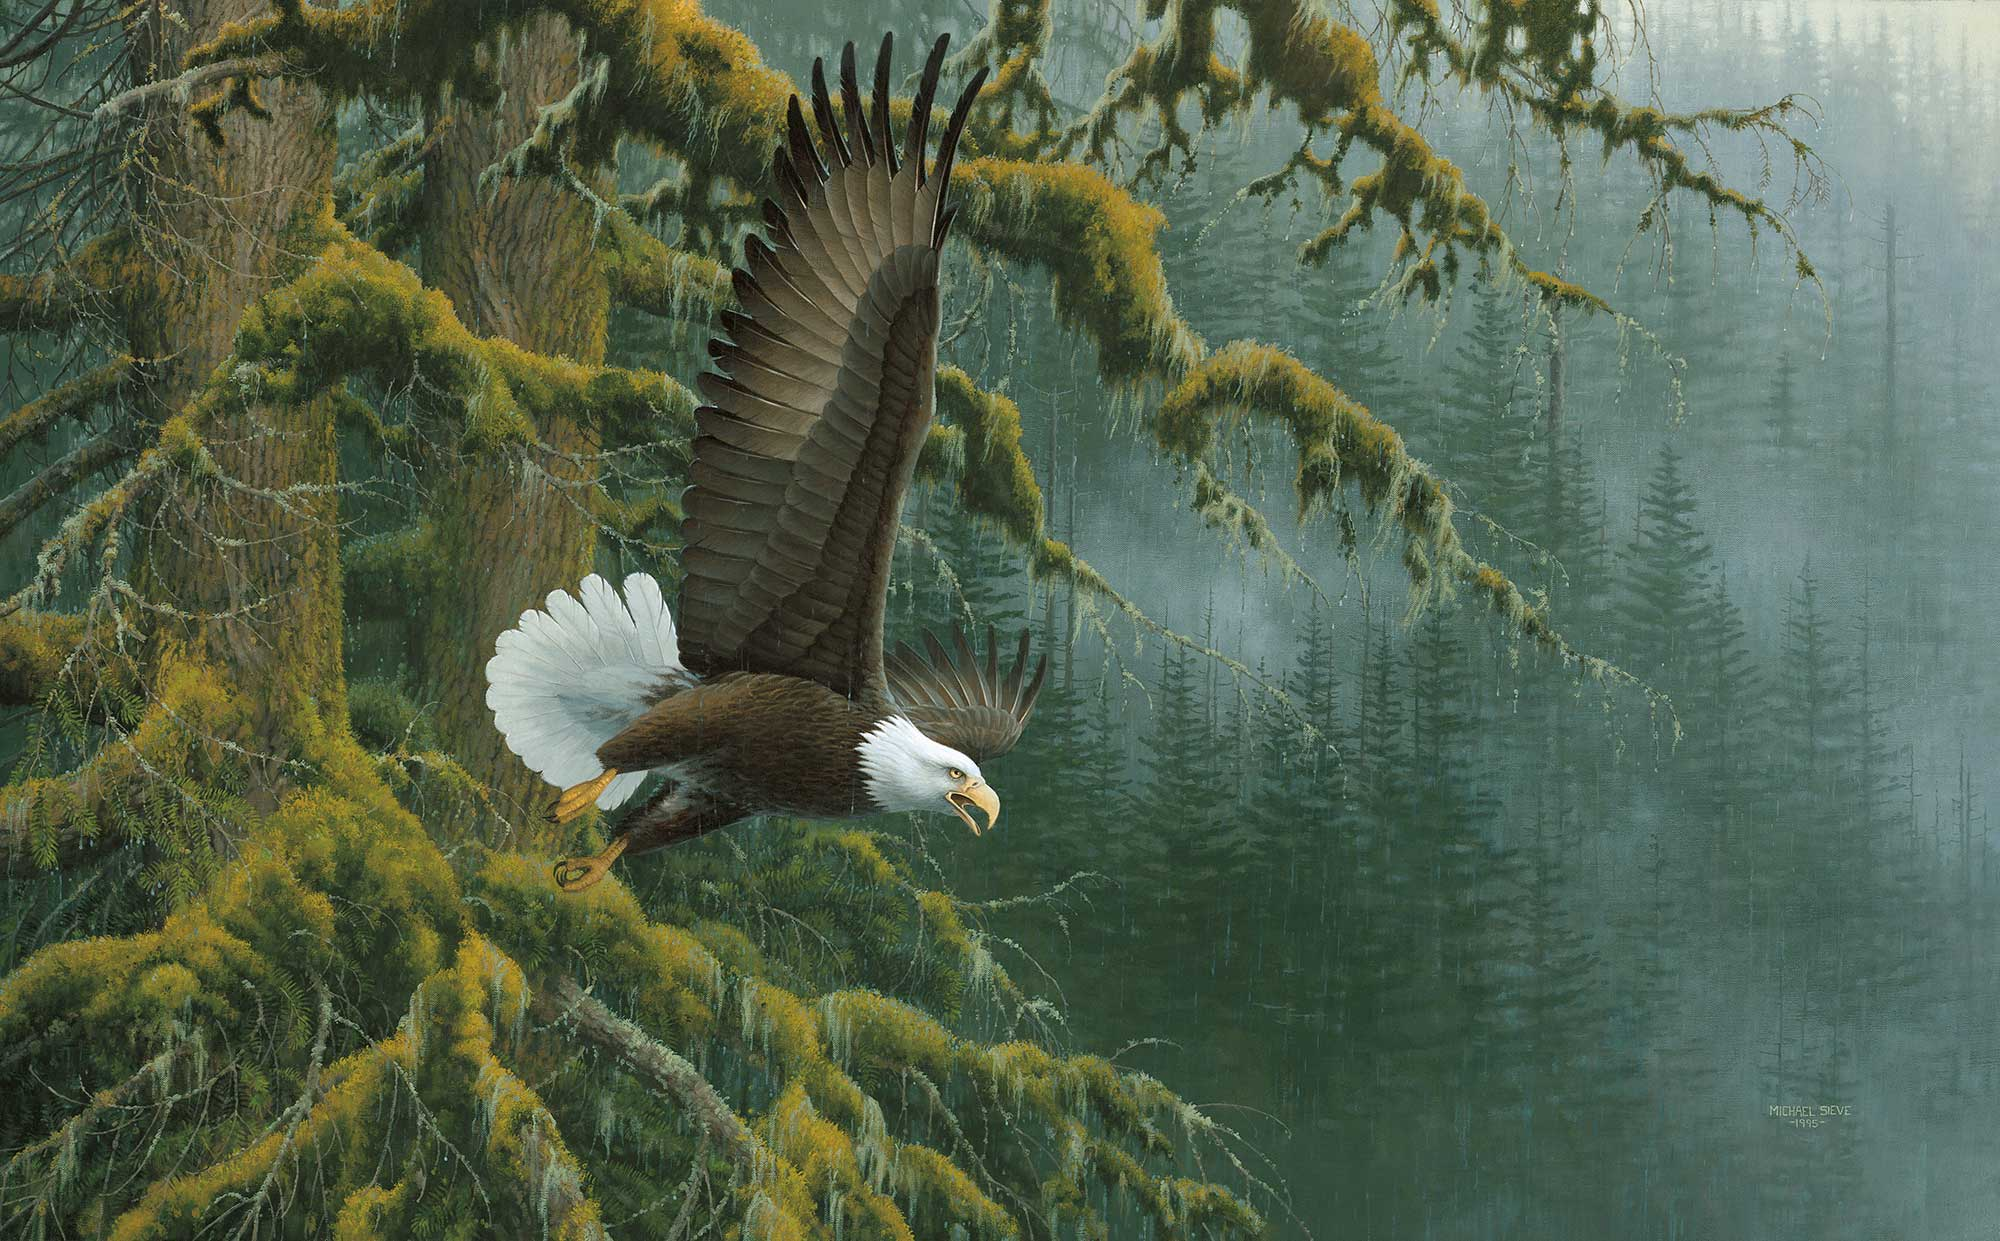 Wildlife Art Misty Forest Bald Eagle Print By Michael Sieve Wild